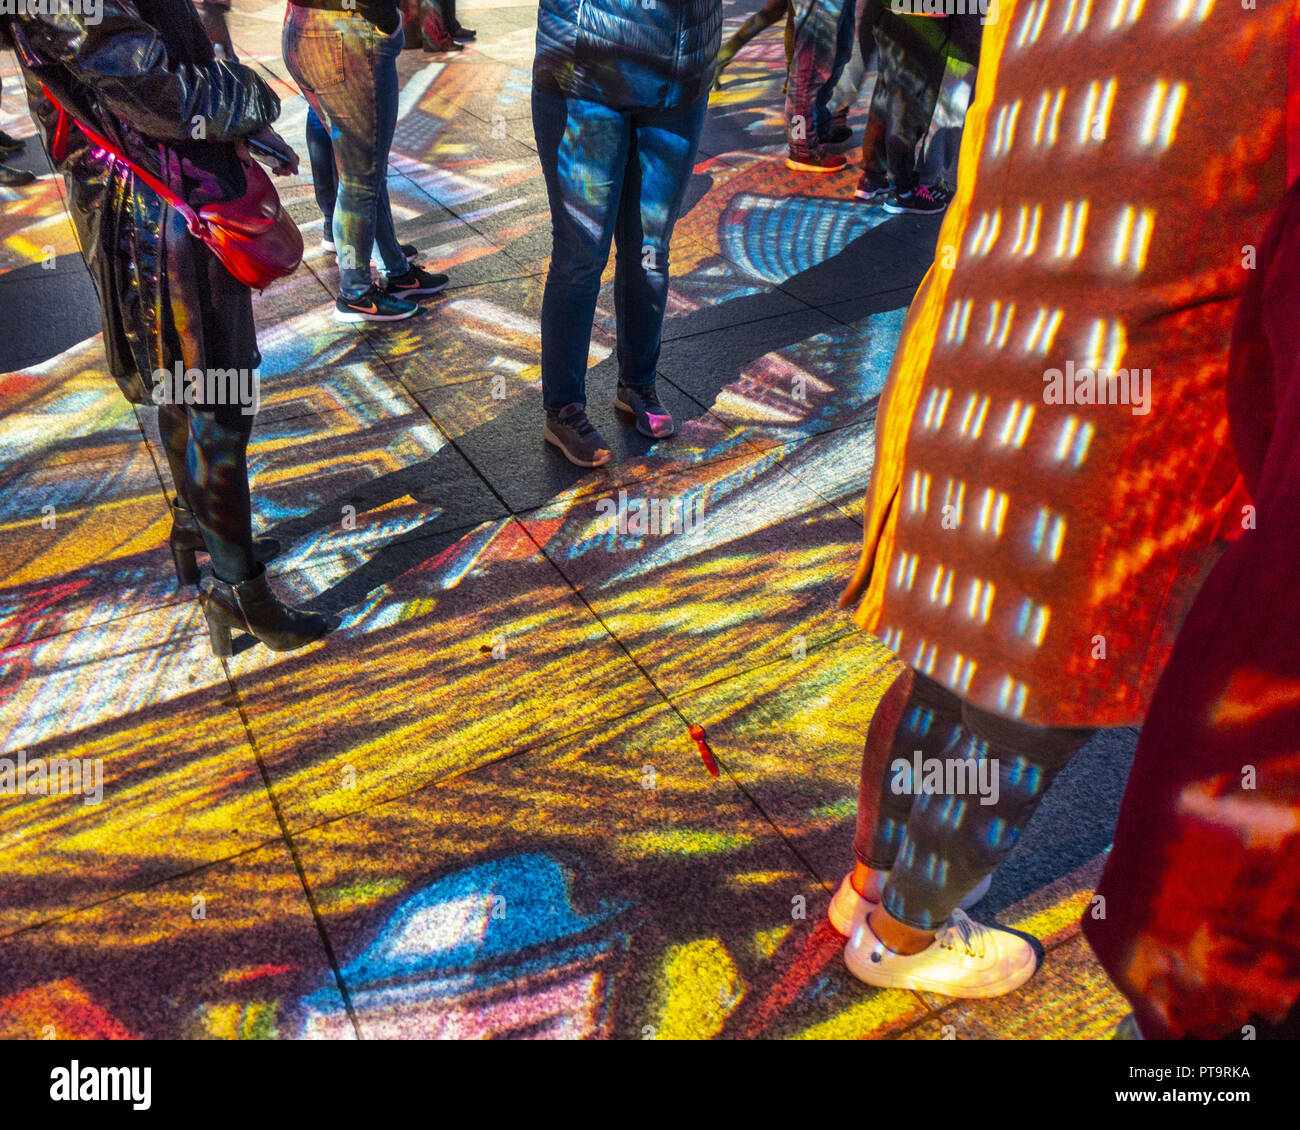 October 7, 2018 - Berlin, Berlin, Germany - People stand in the light of colorful projections as part of the 2018 Festival of Lights in Berlin, Germany October 7, 2018. Through several locations in the German capital including landmarks, museums and public buildings were lit with colorful artistic projections (Mapping) that work with the architecture of the building. (Credit Image: © Omer Messinger/ZUMA Wire) - Stock Image